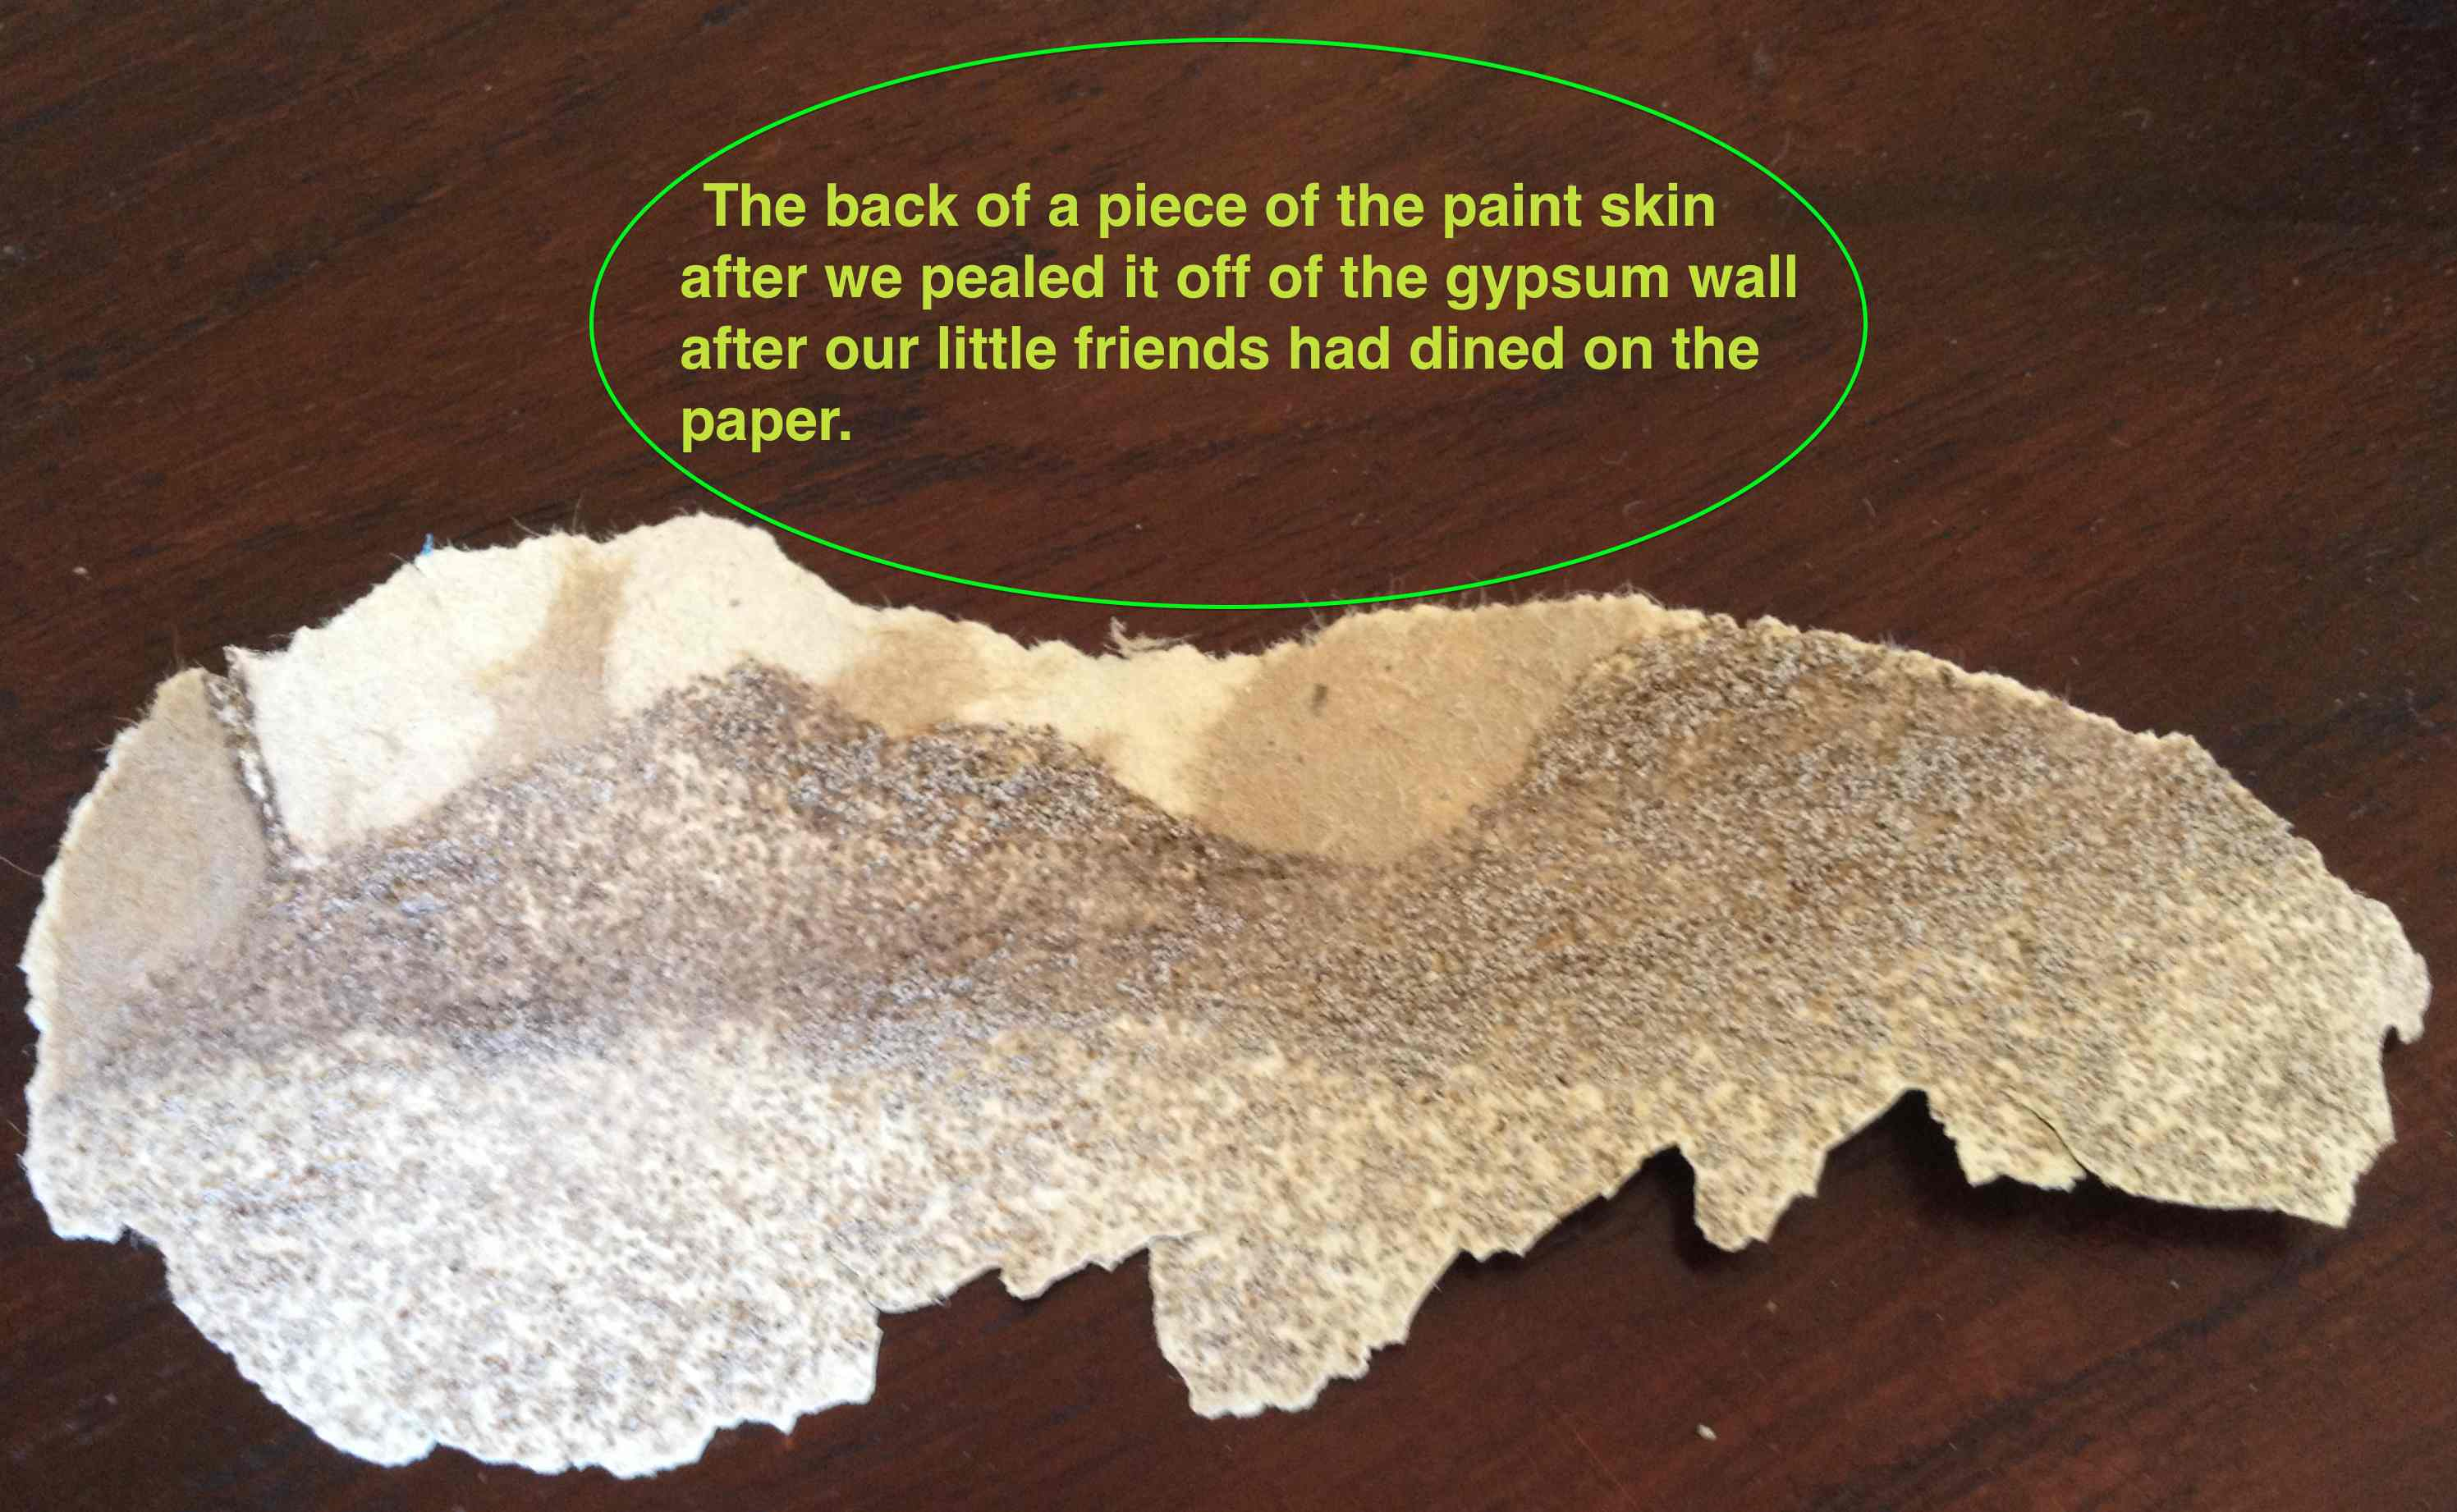 Paint removed from termite infested gypsum board - what we saw from the back.